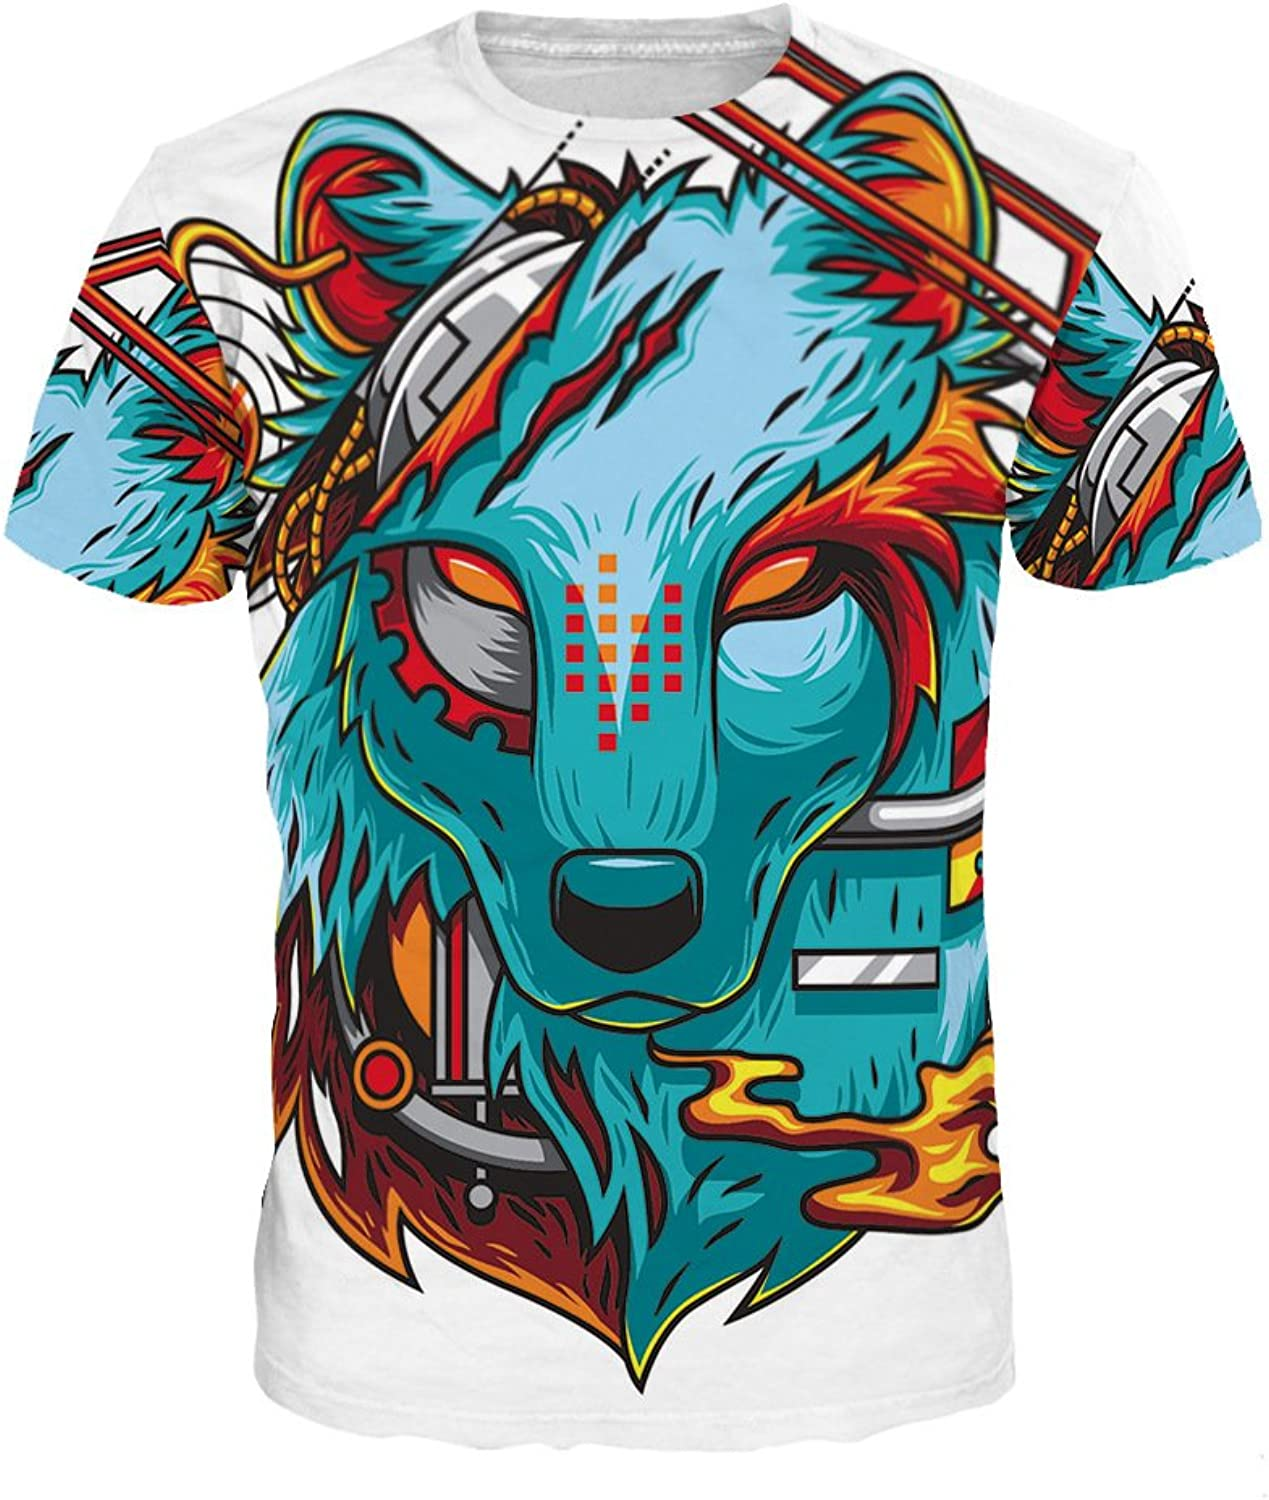 Short Sleeve TShirt with Painted Wolf Totem 3D Digital Printing Fashion Clothing Comfortable & Durable for Couple